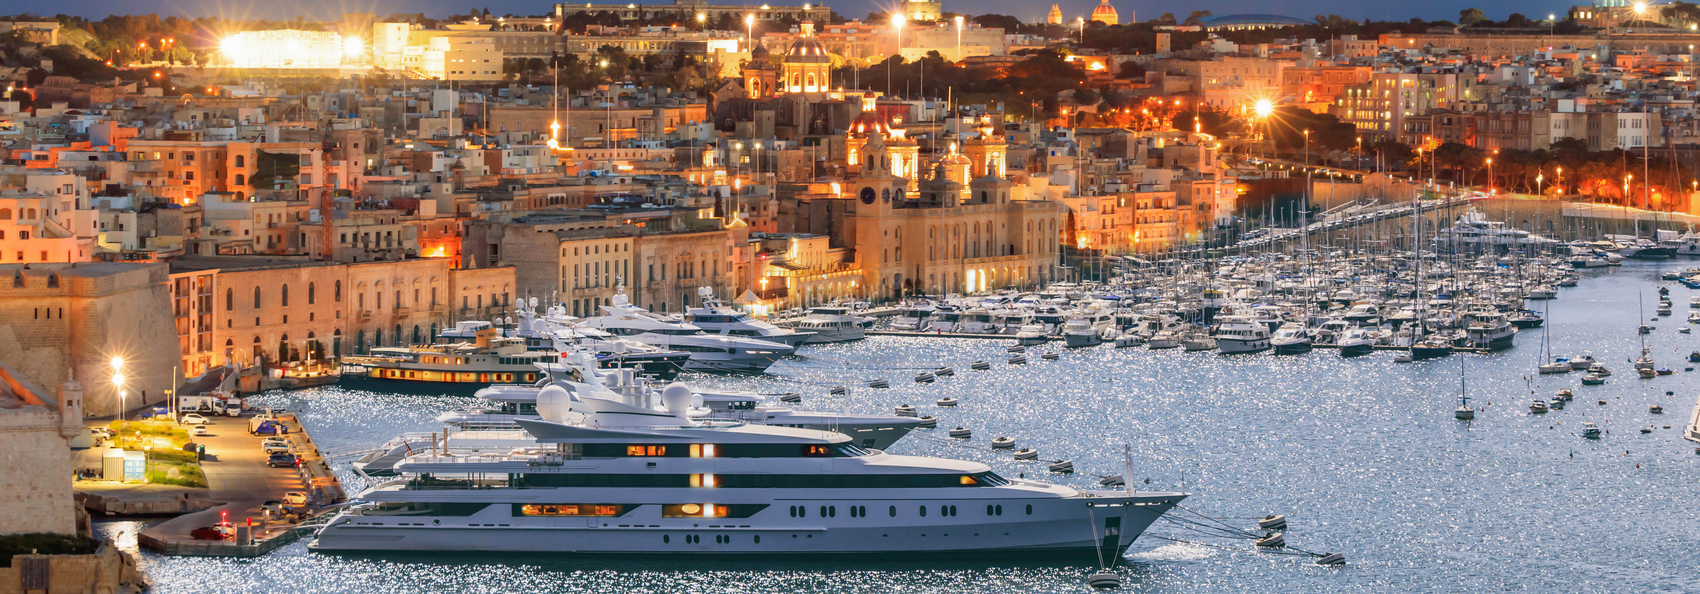 S&D Yachts - Yacht Agency Services